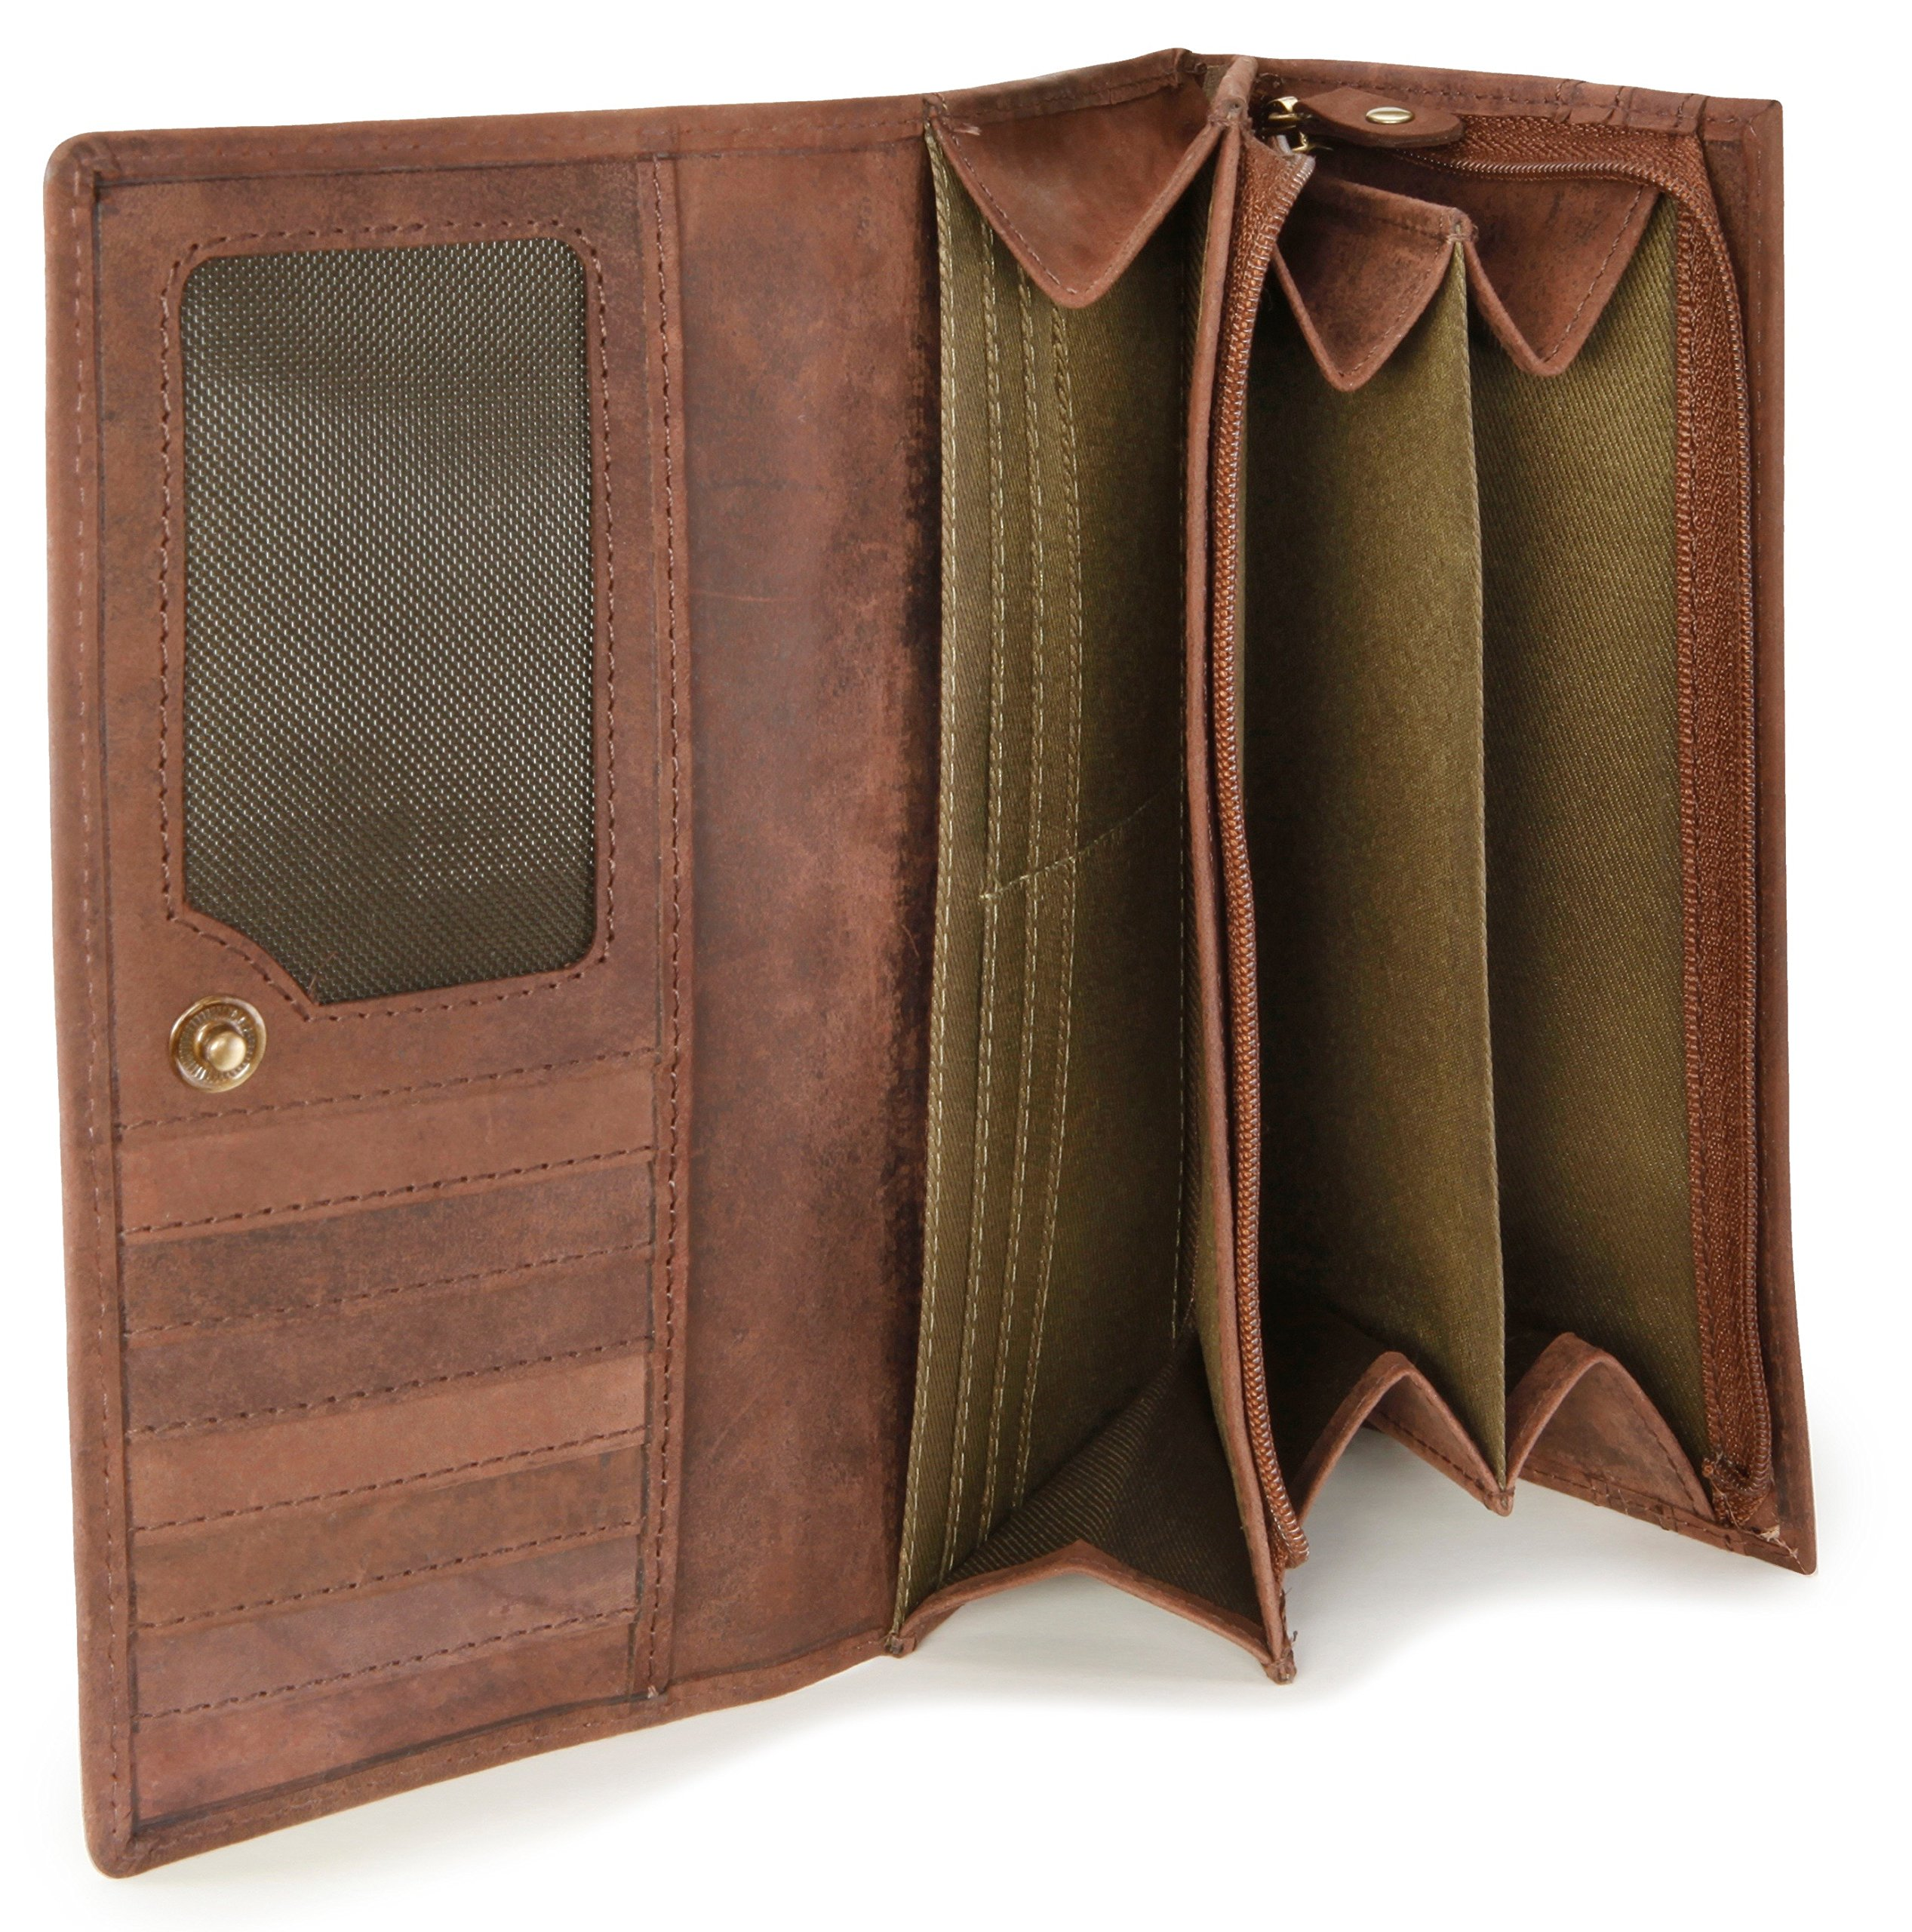 LEABAGS Charlotte genuine buffalo leather women's wallet in vintage style - Nutmeg by LEABAGS (Image #7)